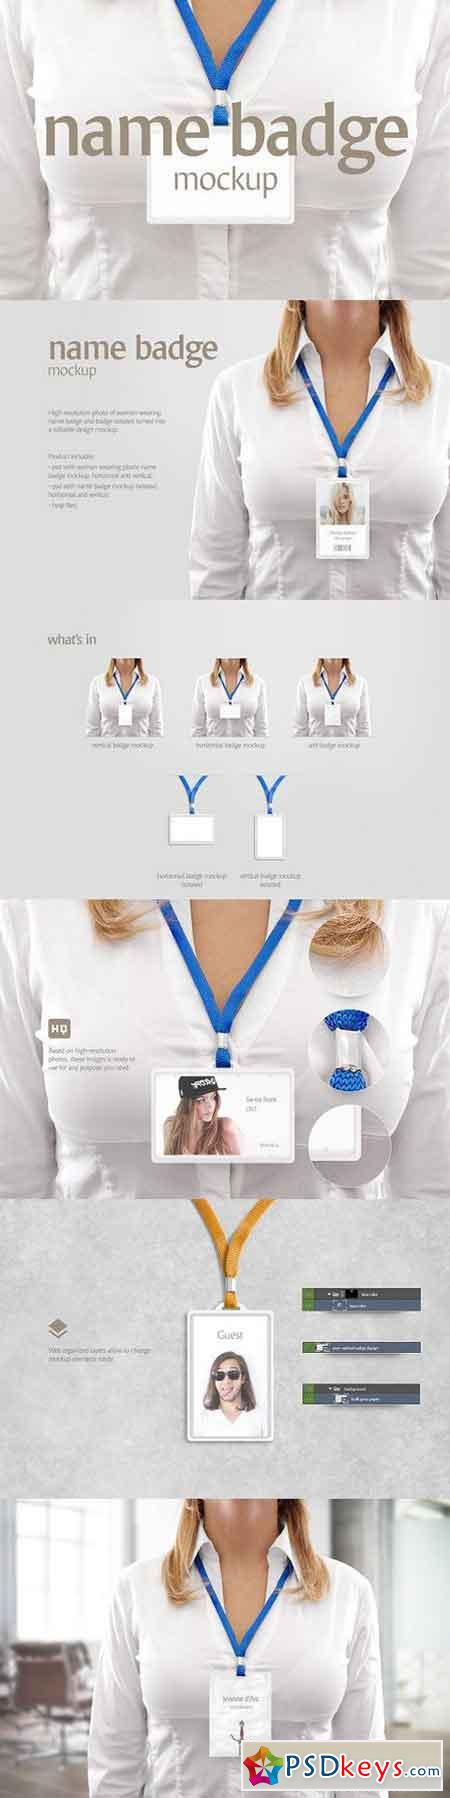 Name badge mockup 1274176